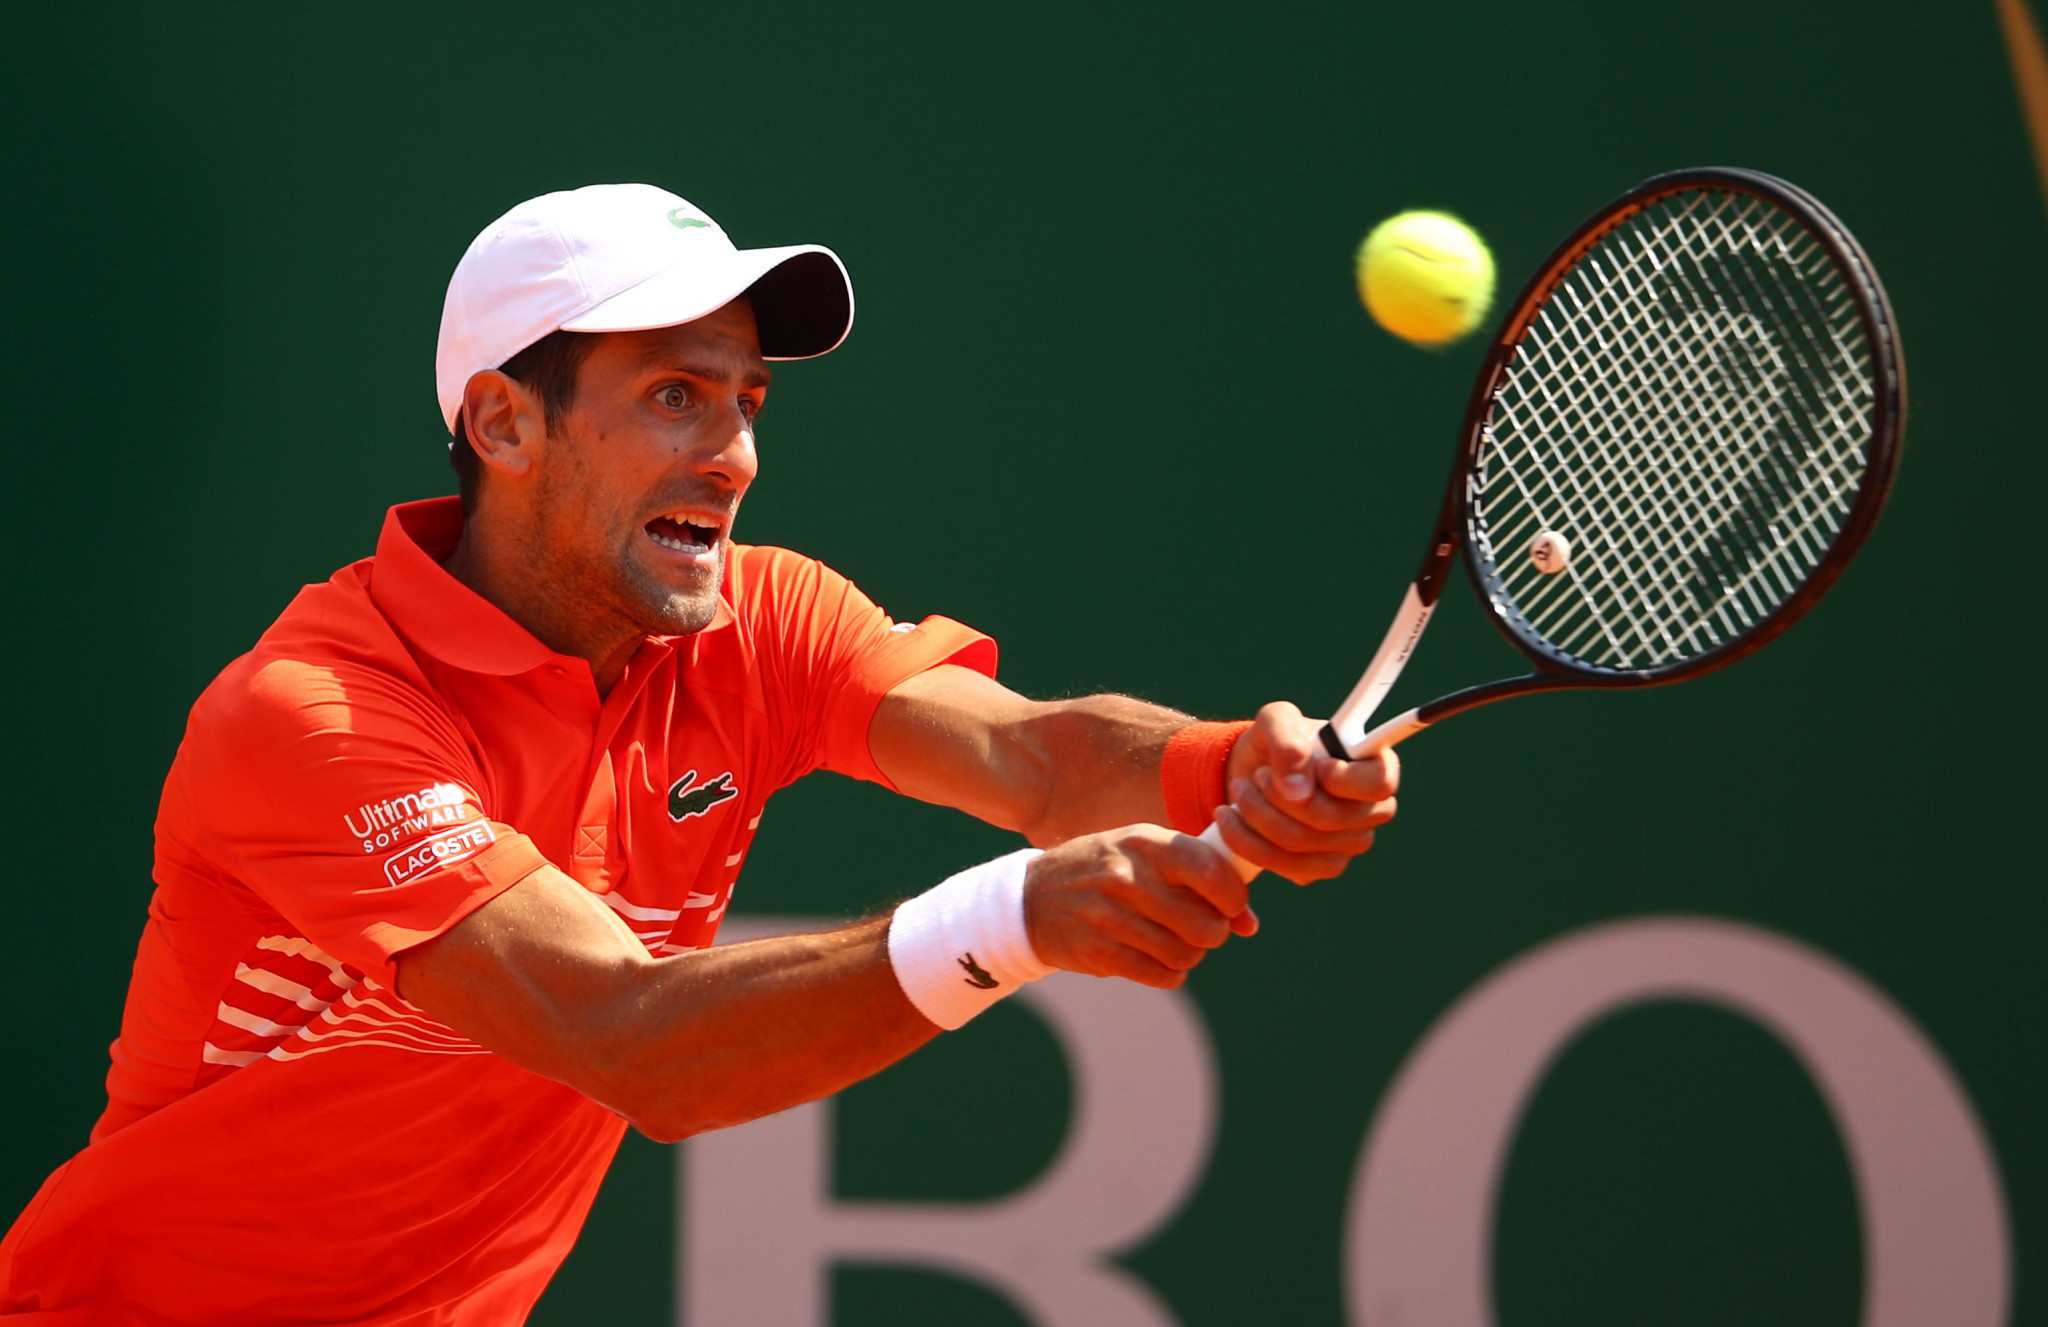 World number one Djokovic eases into Monte-Carlo Masters quarter-final